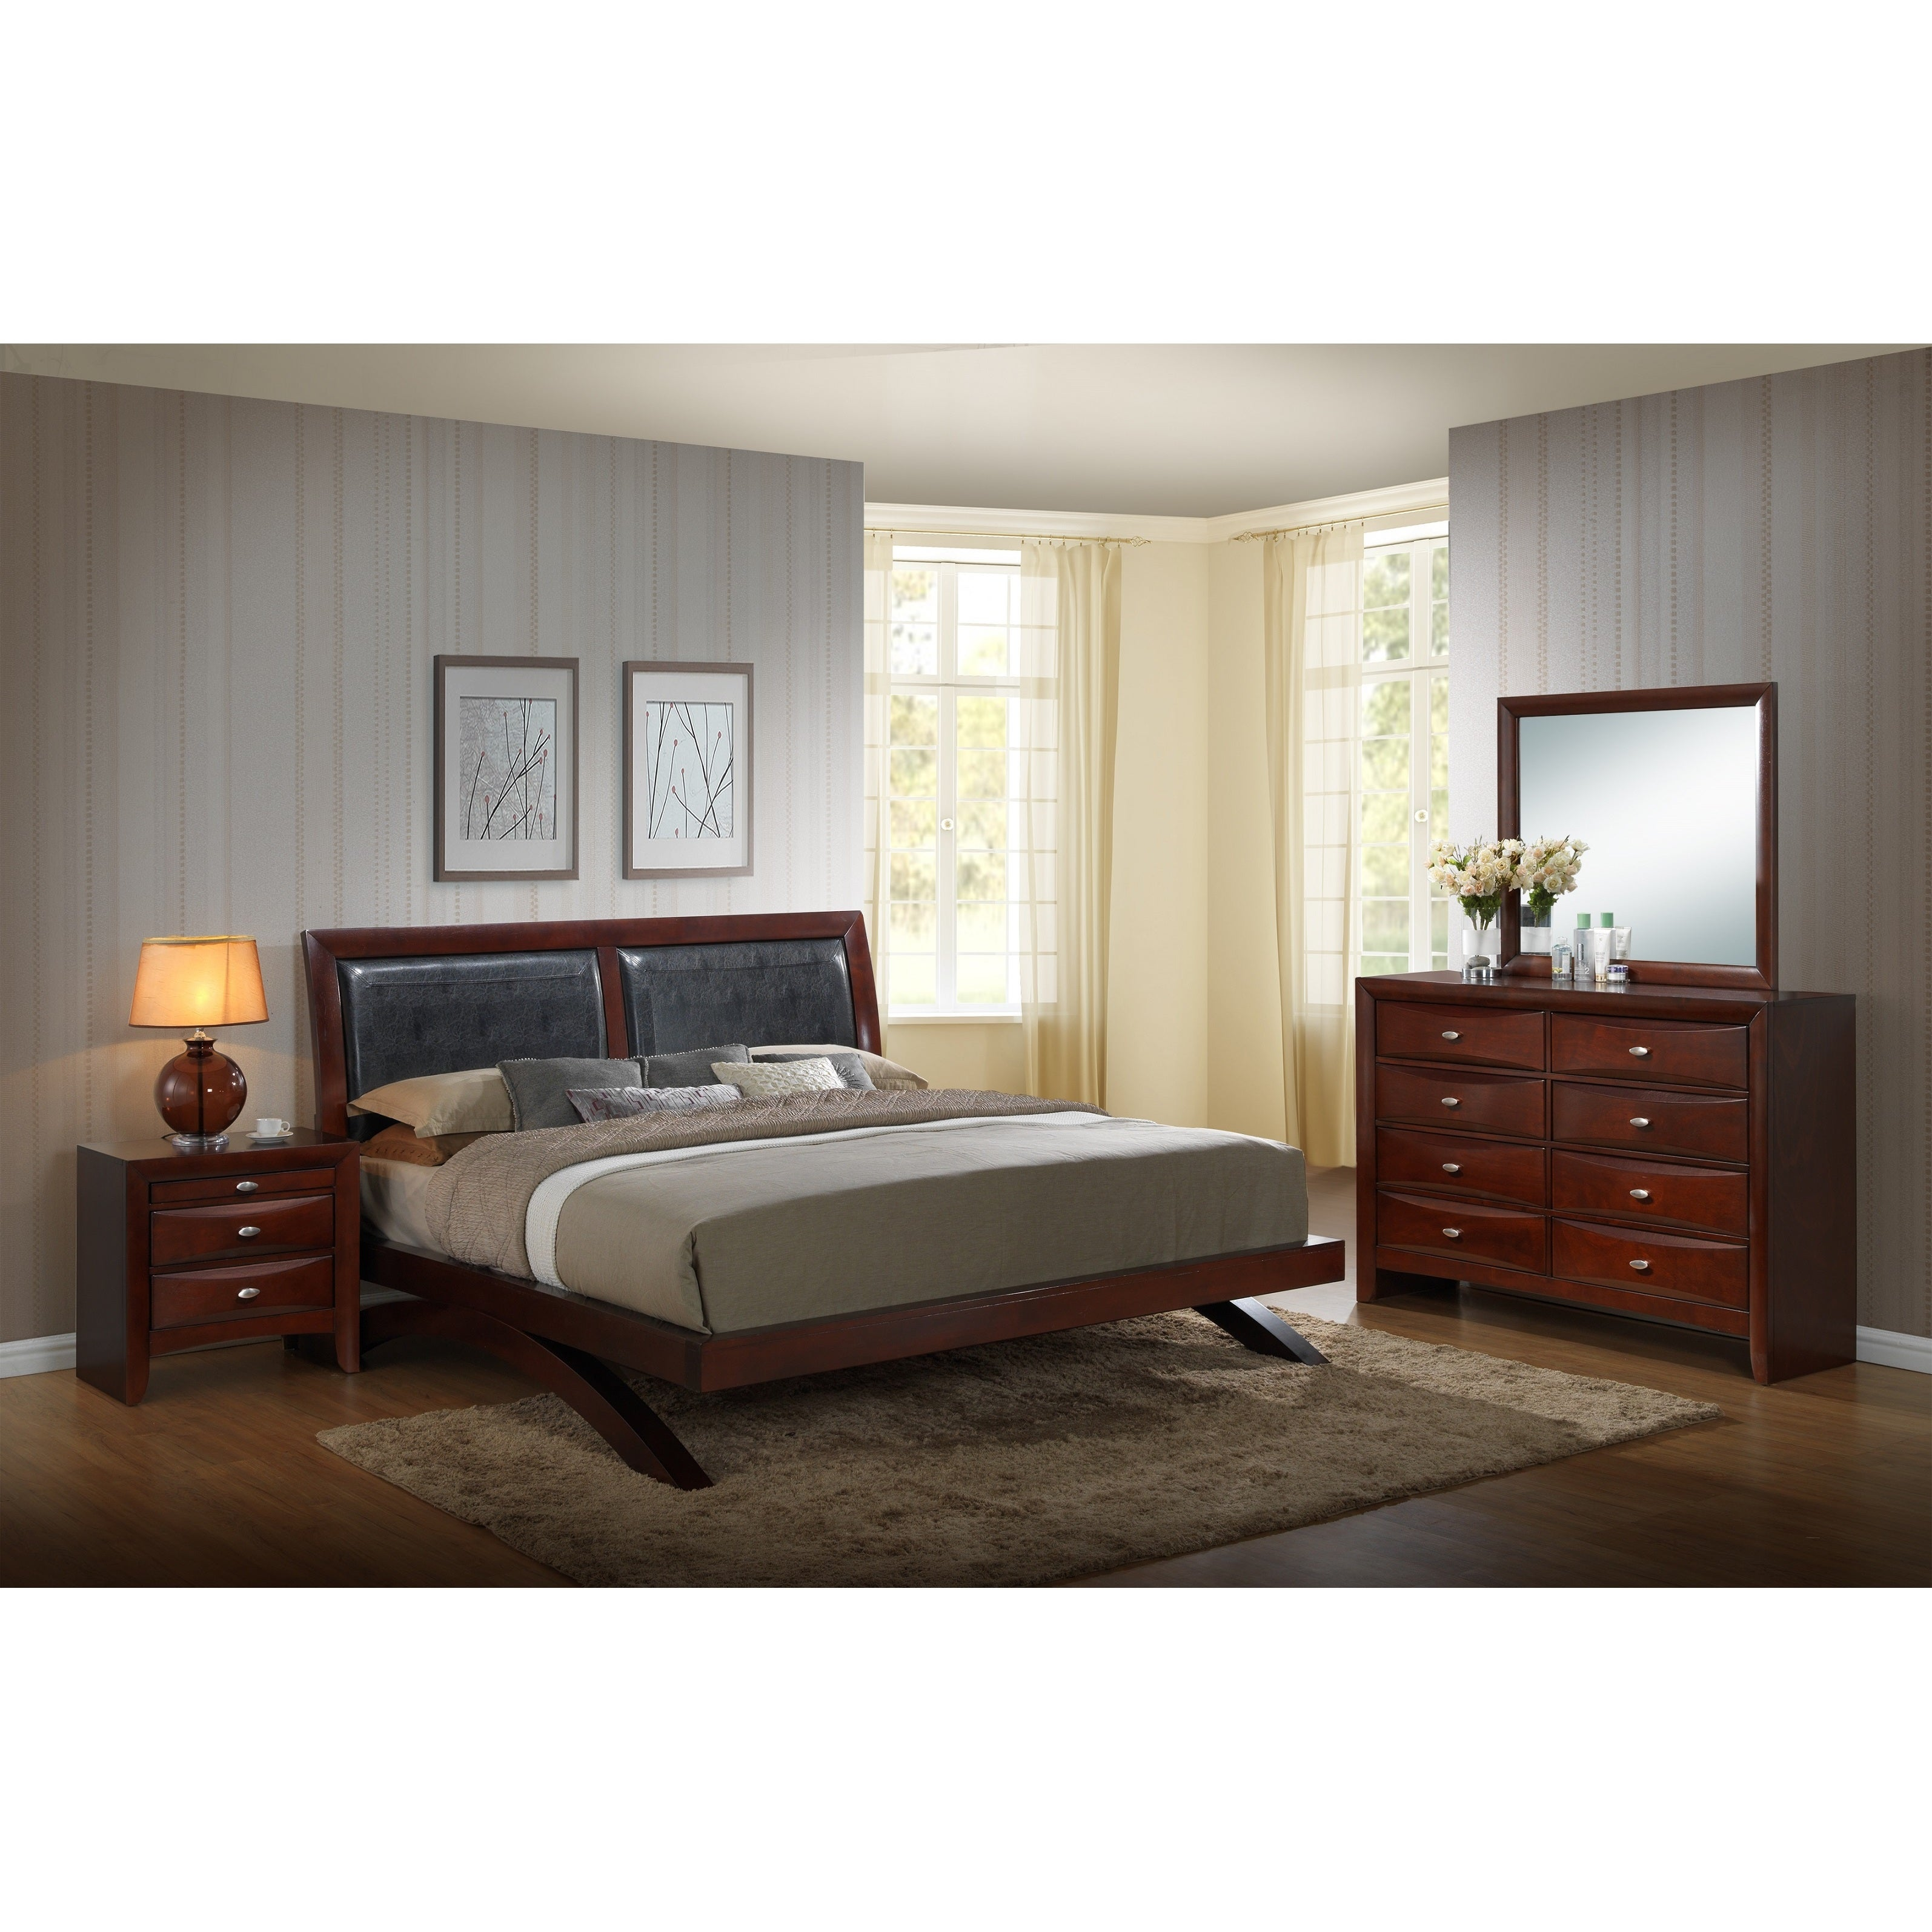 Emily 111 Wood Arch-Leg Bed Group with King Bed, Dresser,...